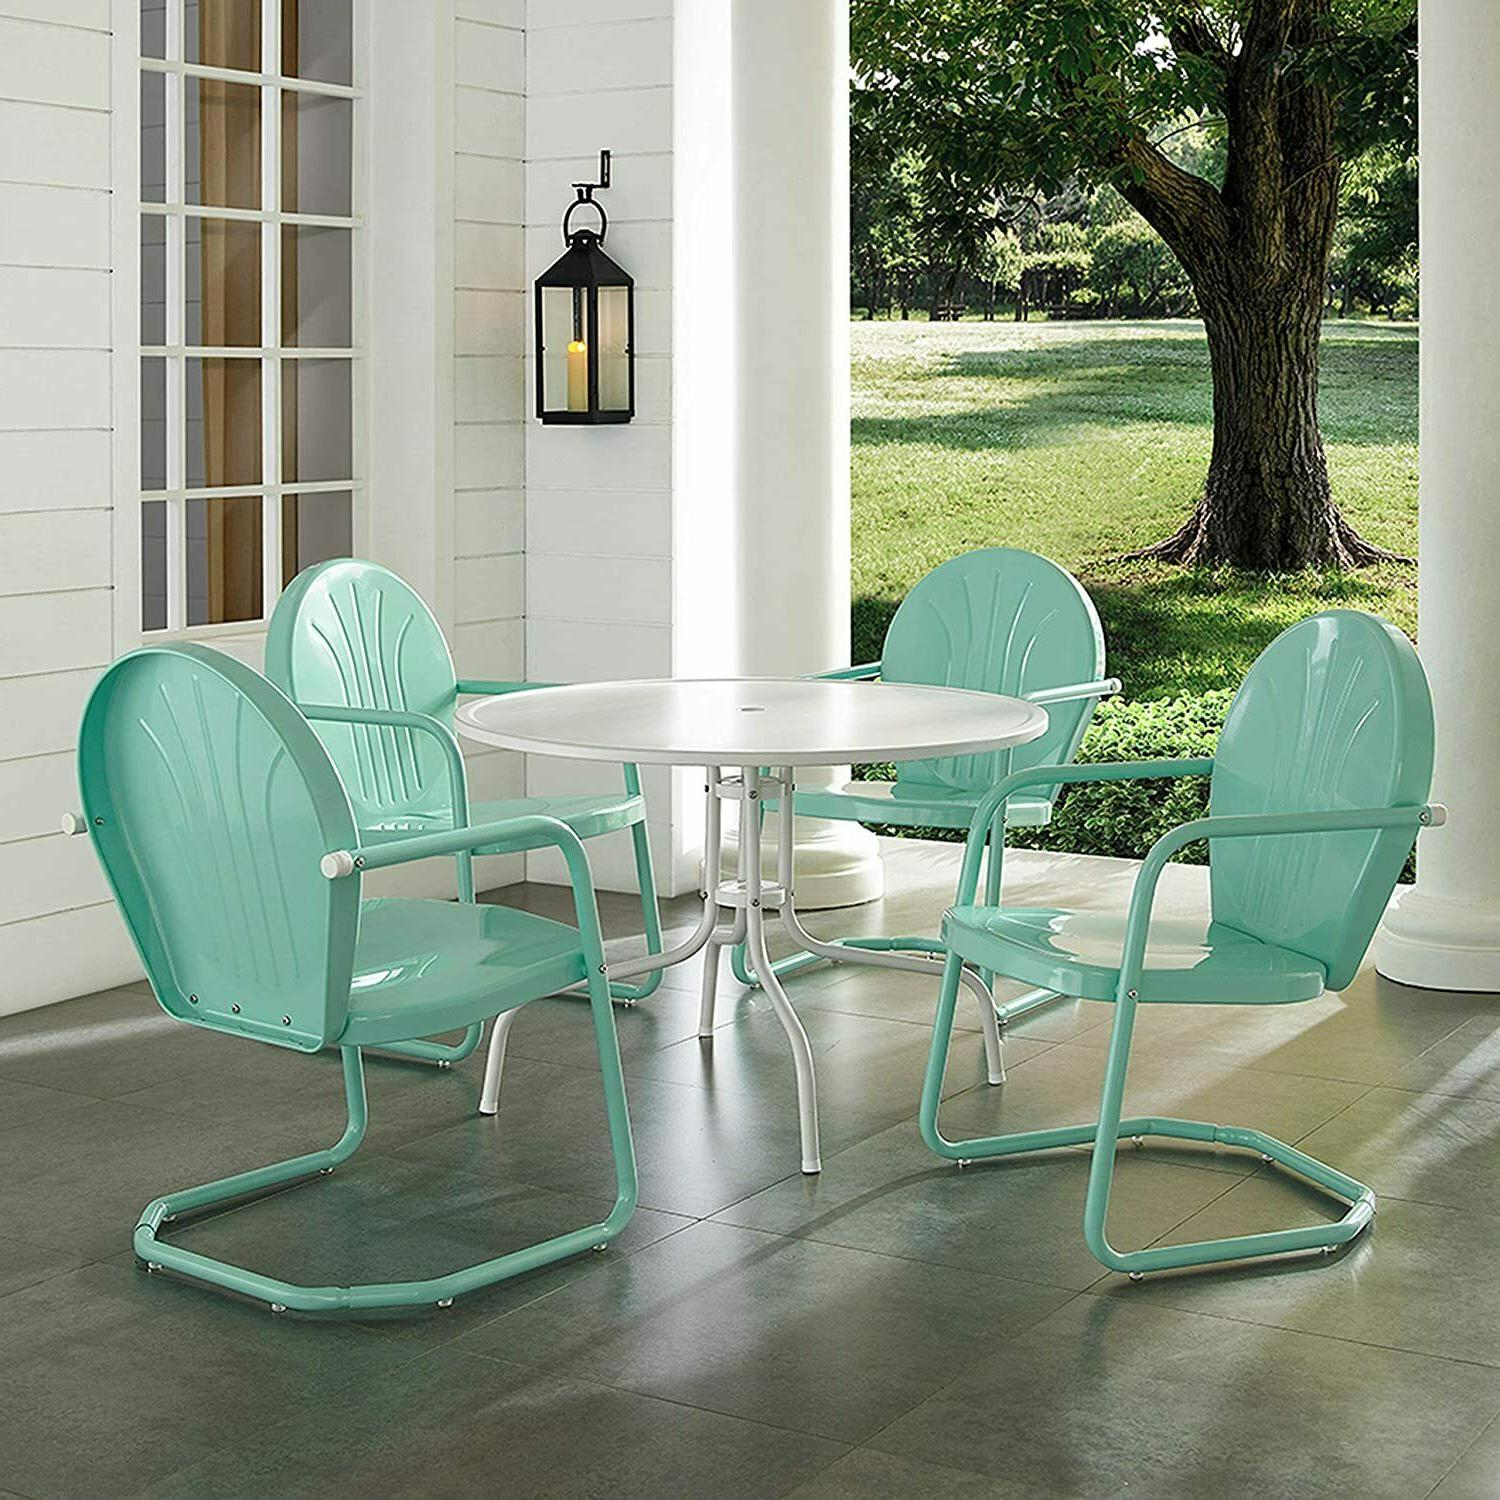 5 1-Table 4-Chairs Outdoor Patio